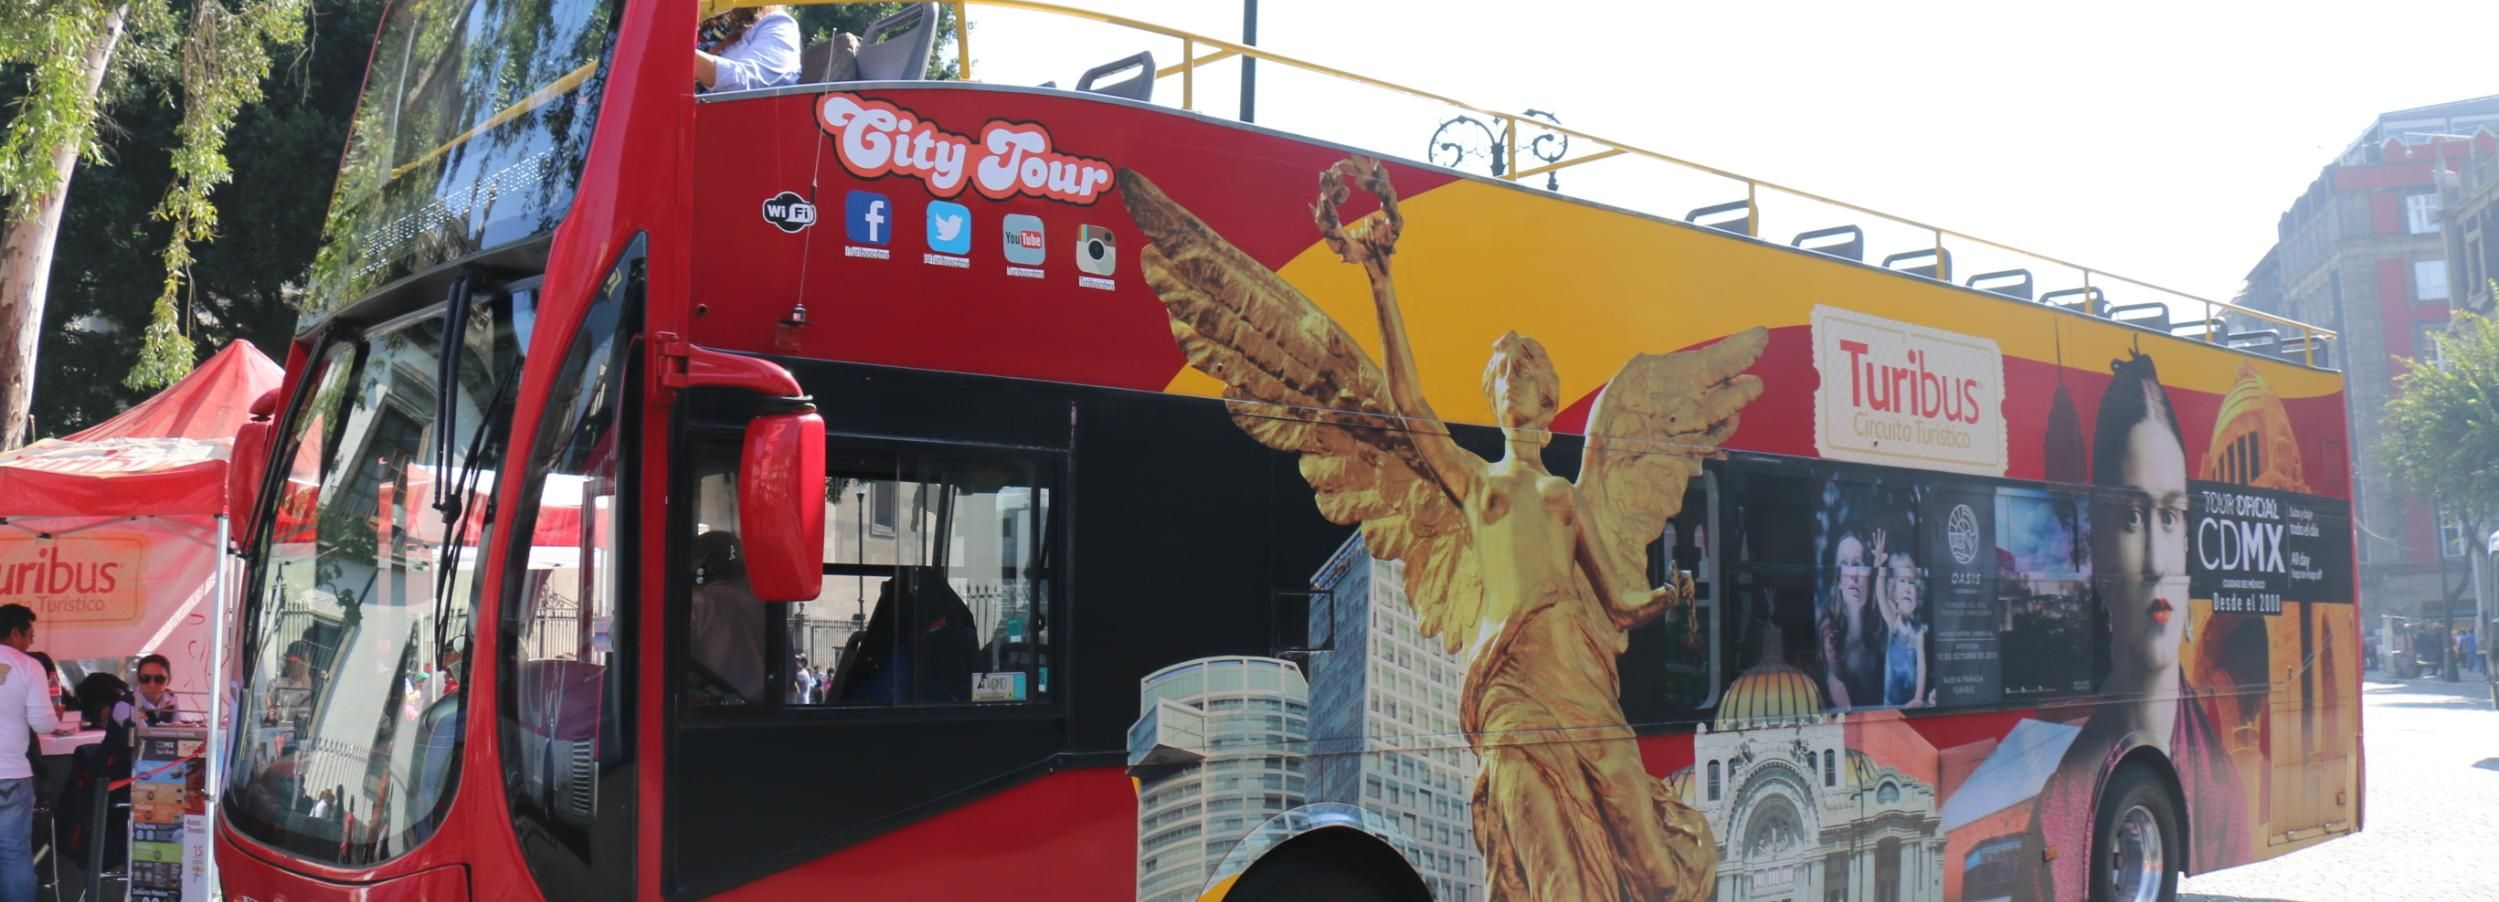 Mexico City: Full-Day Hop-on/Hop-off Bus Tour